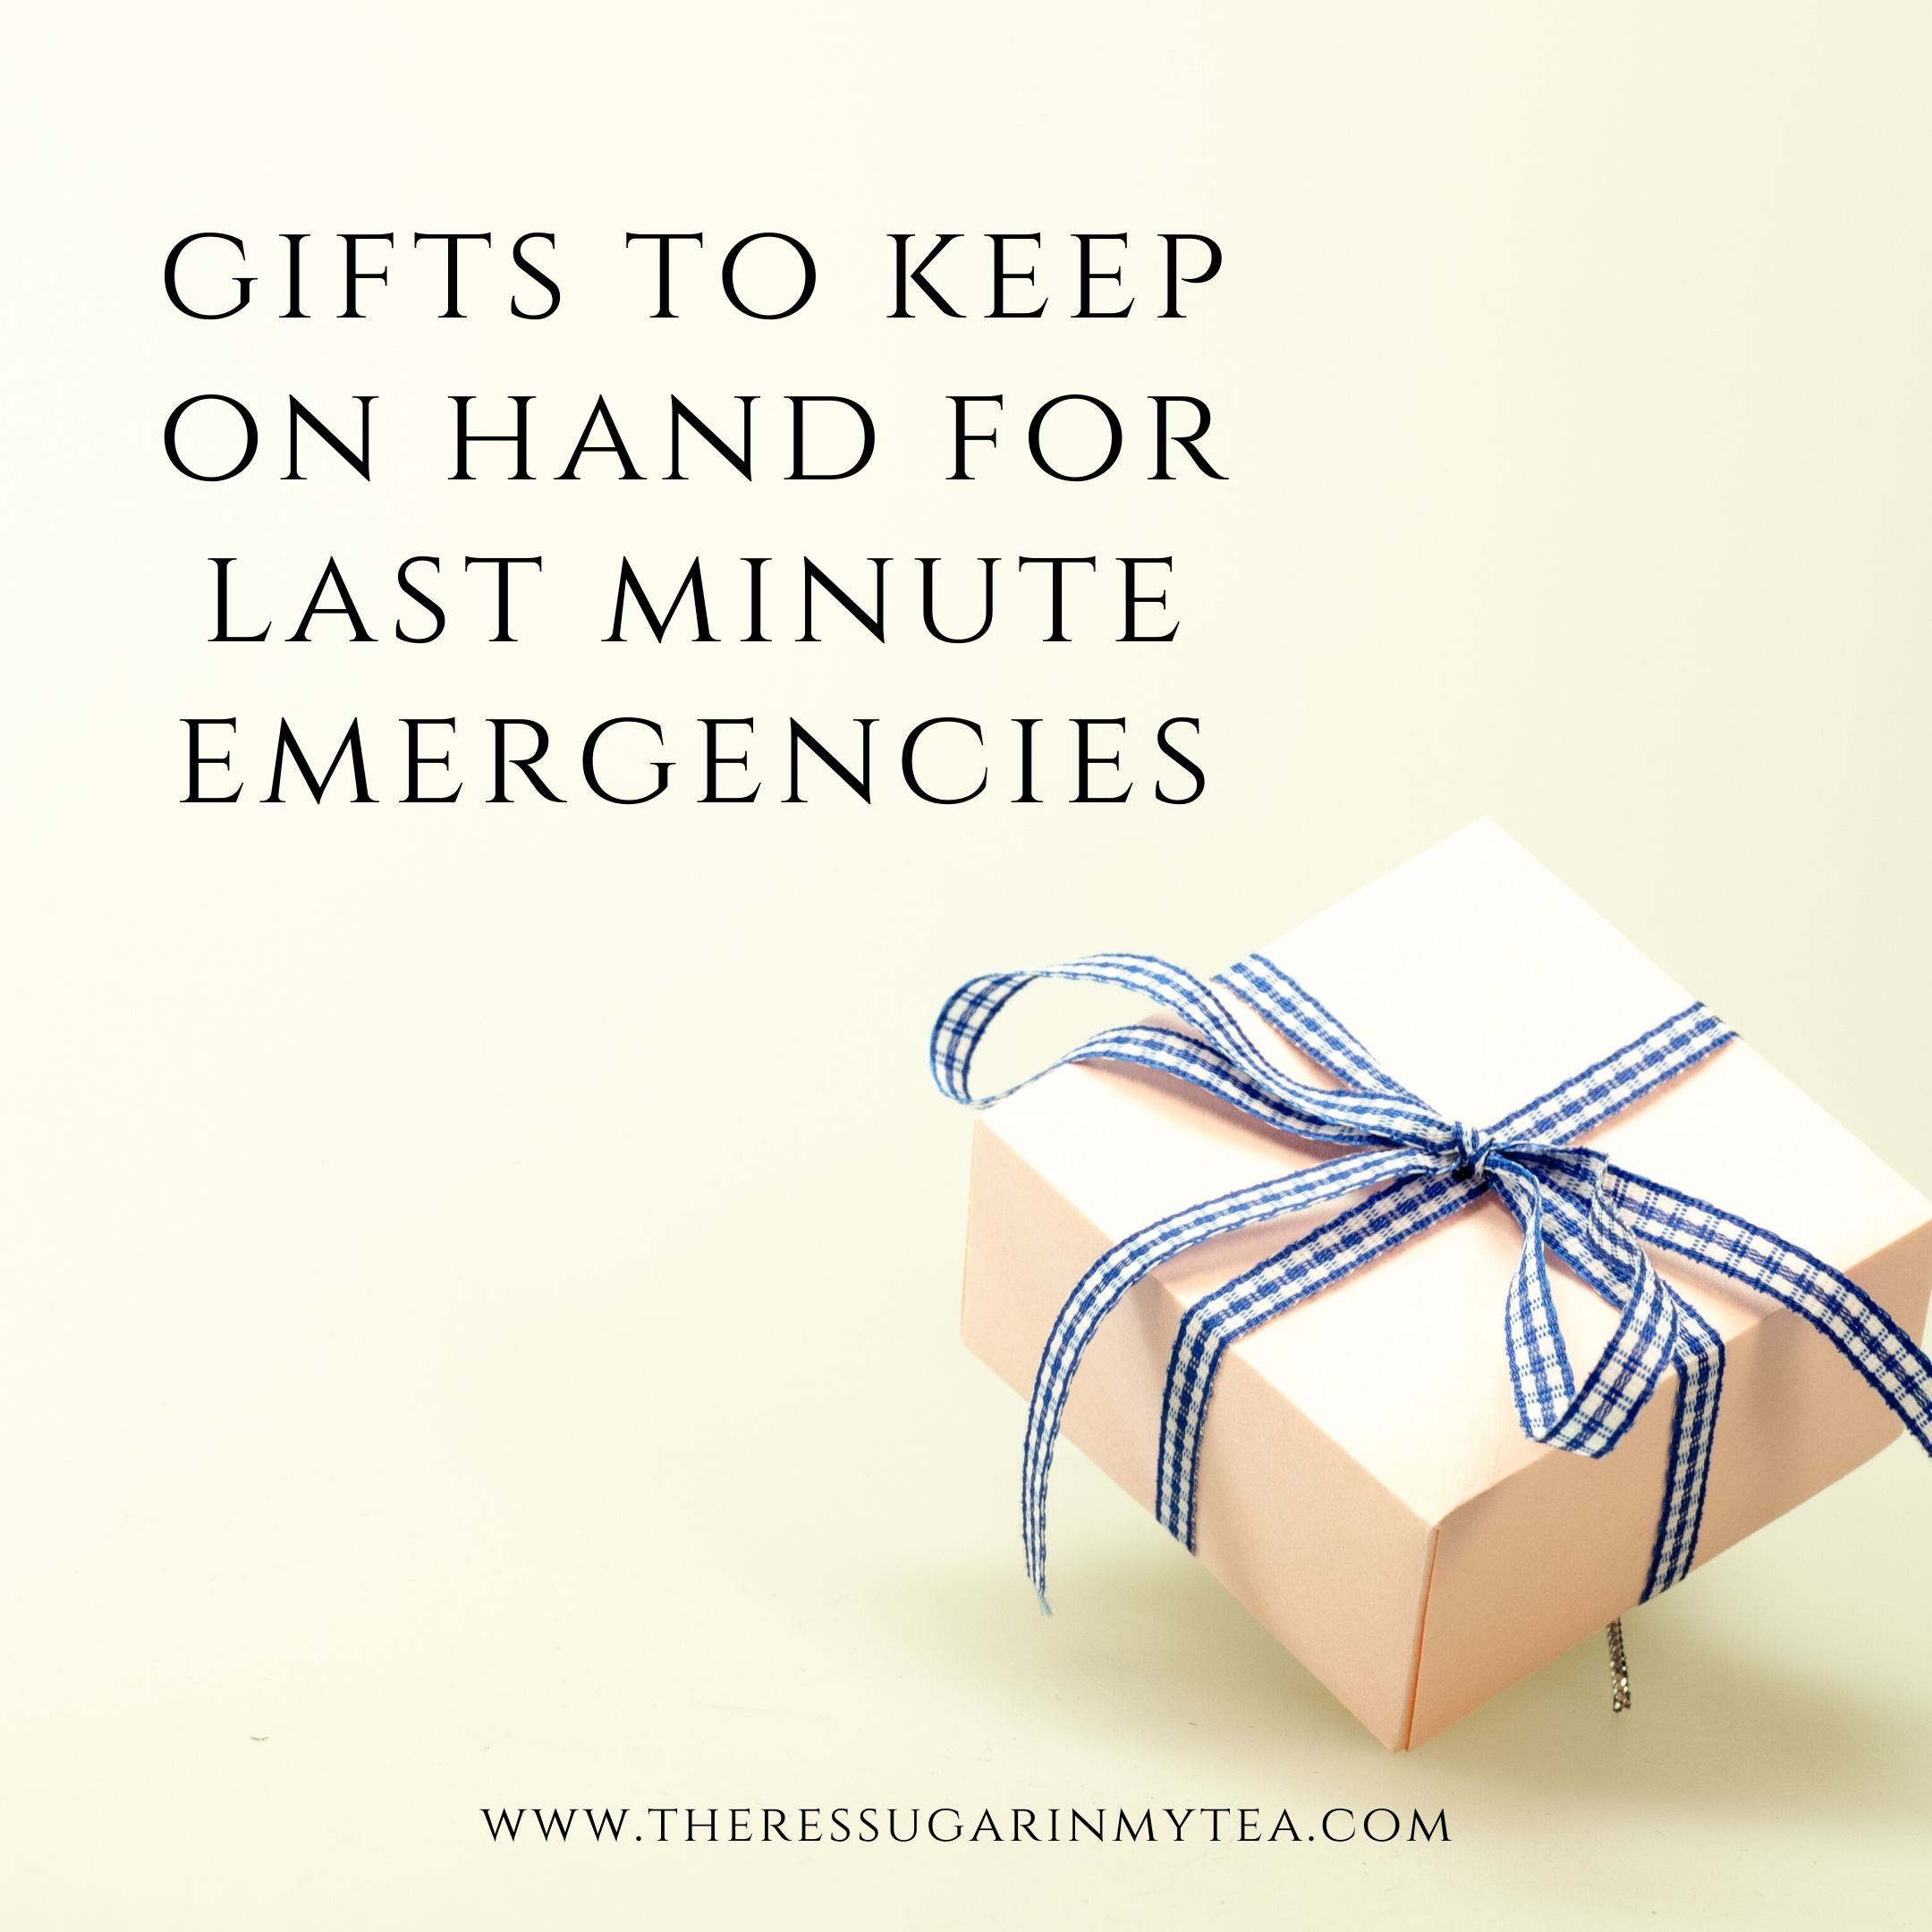 How to stock up on gifts to have on hand for last minute emergencies